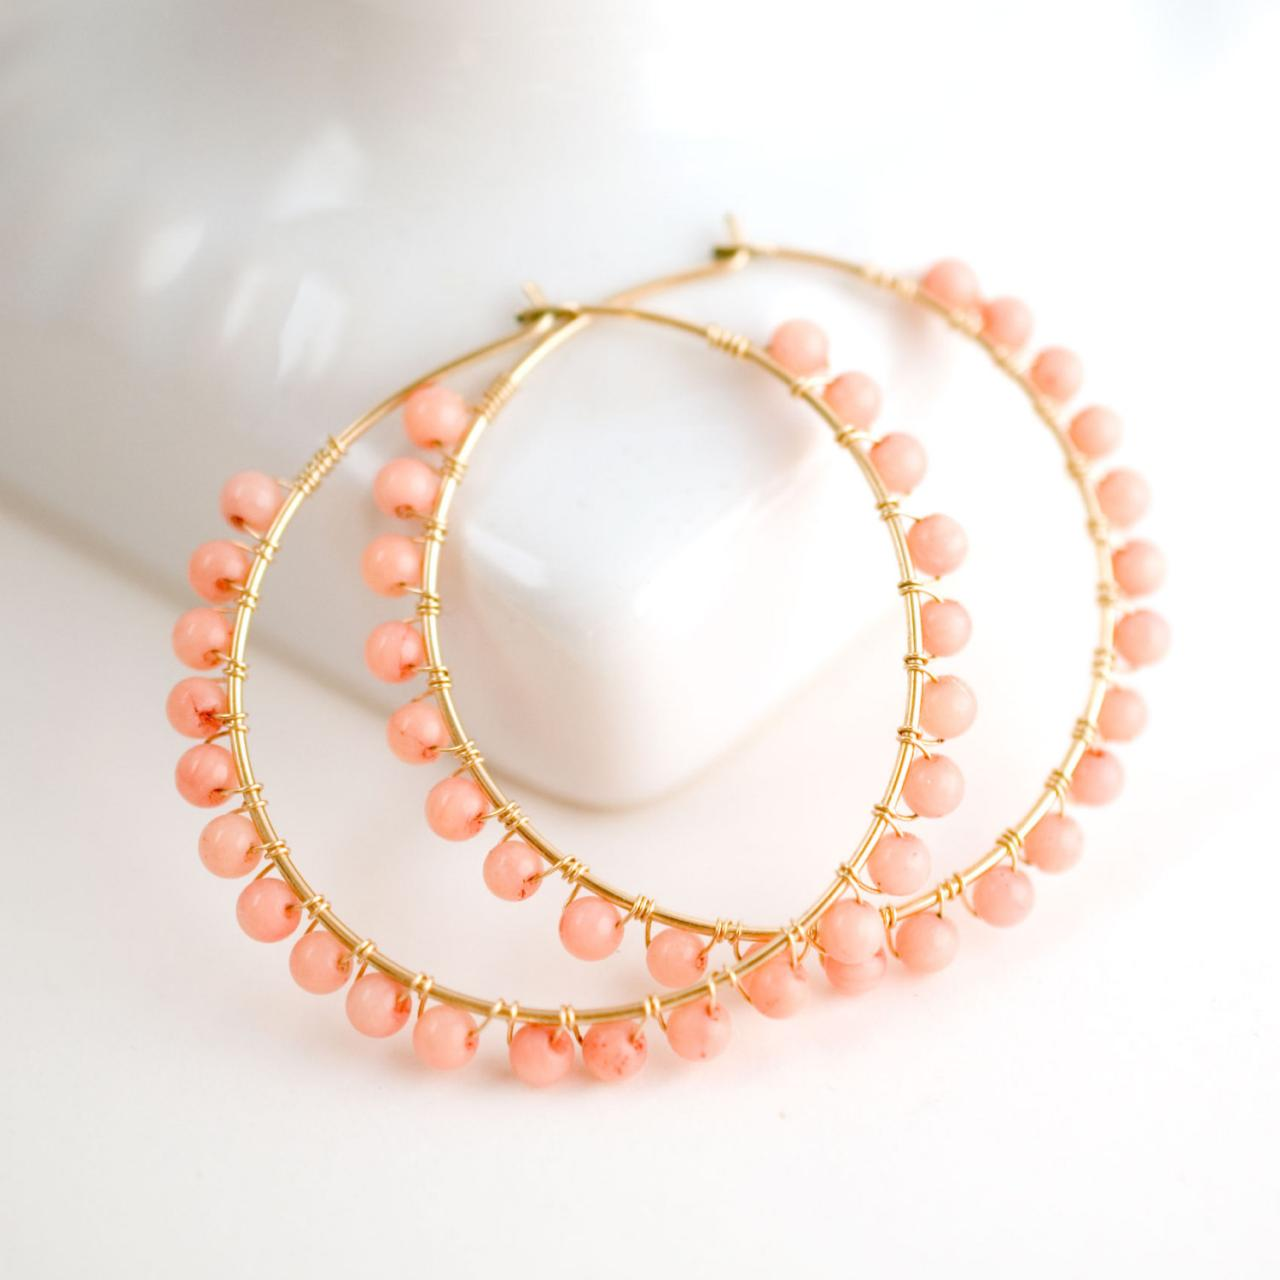 C Gold Hoop Earrings Beaded Pink Hoops Filled